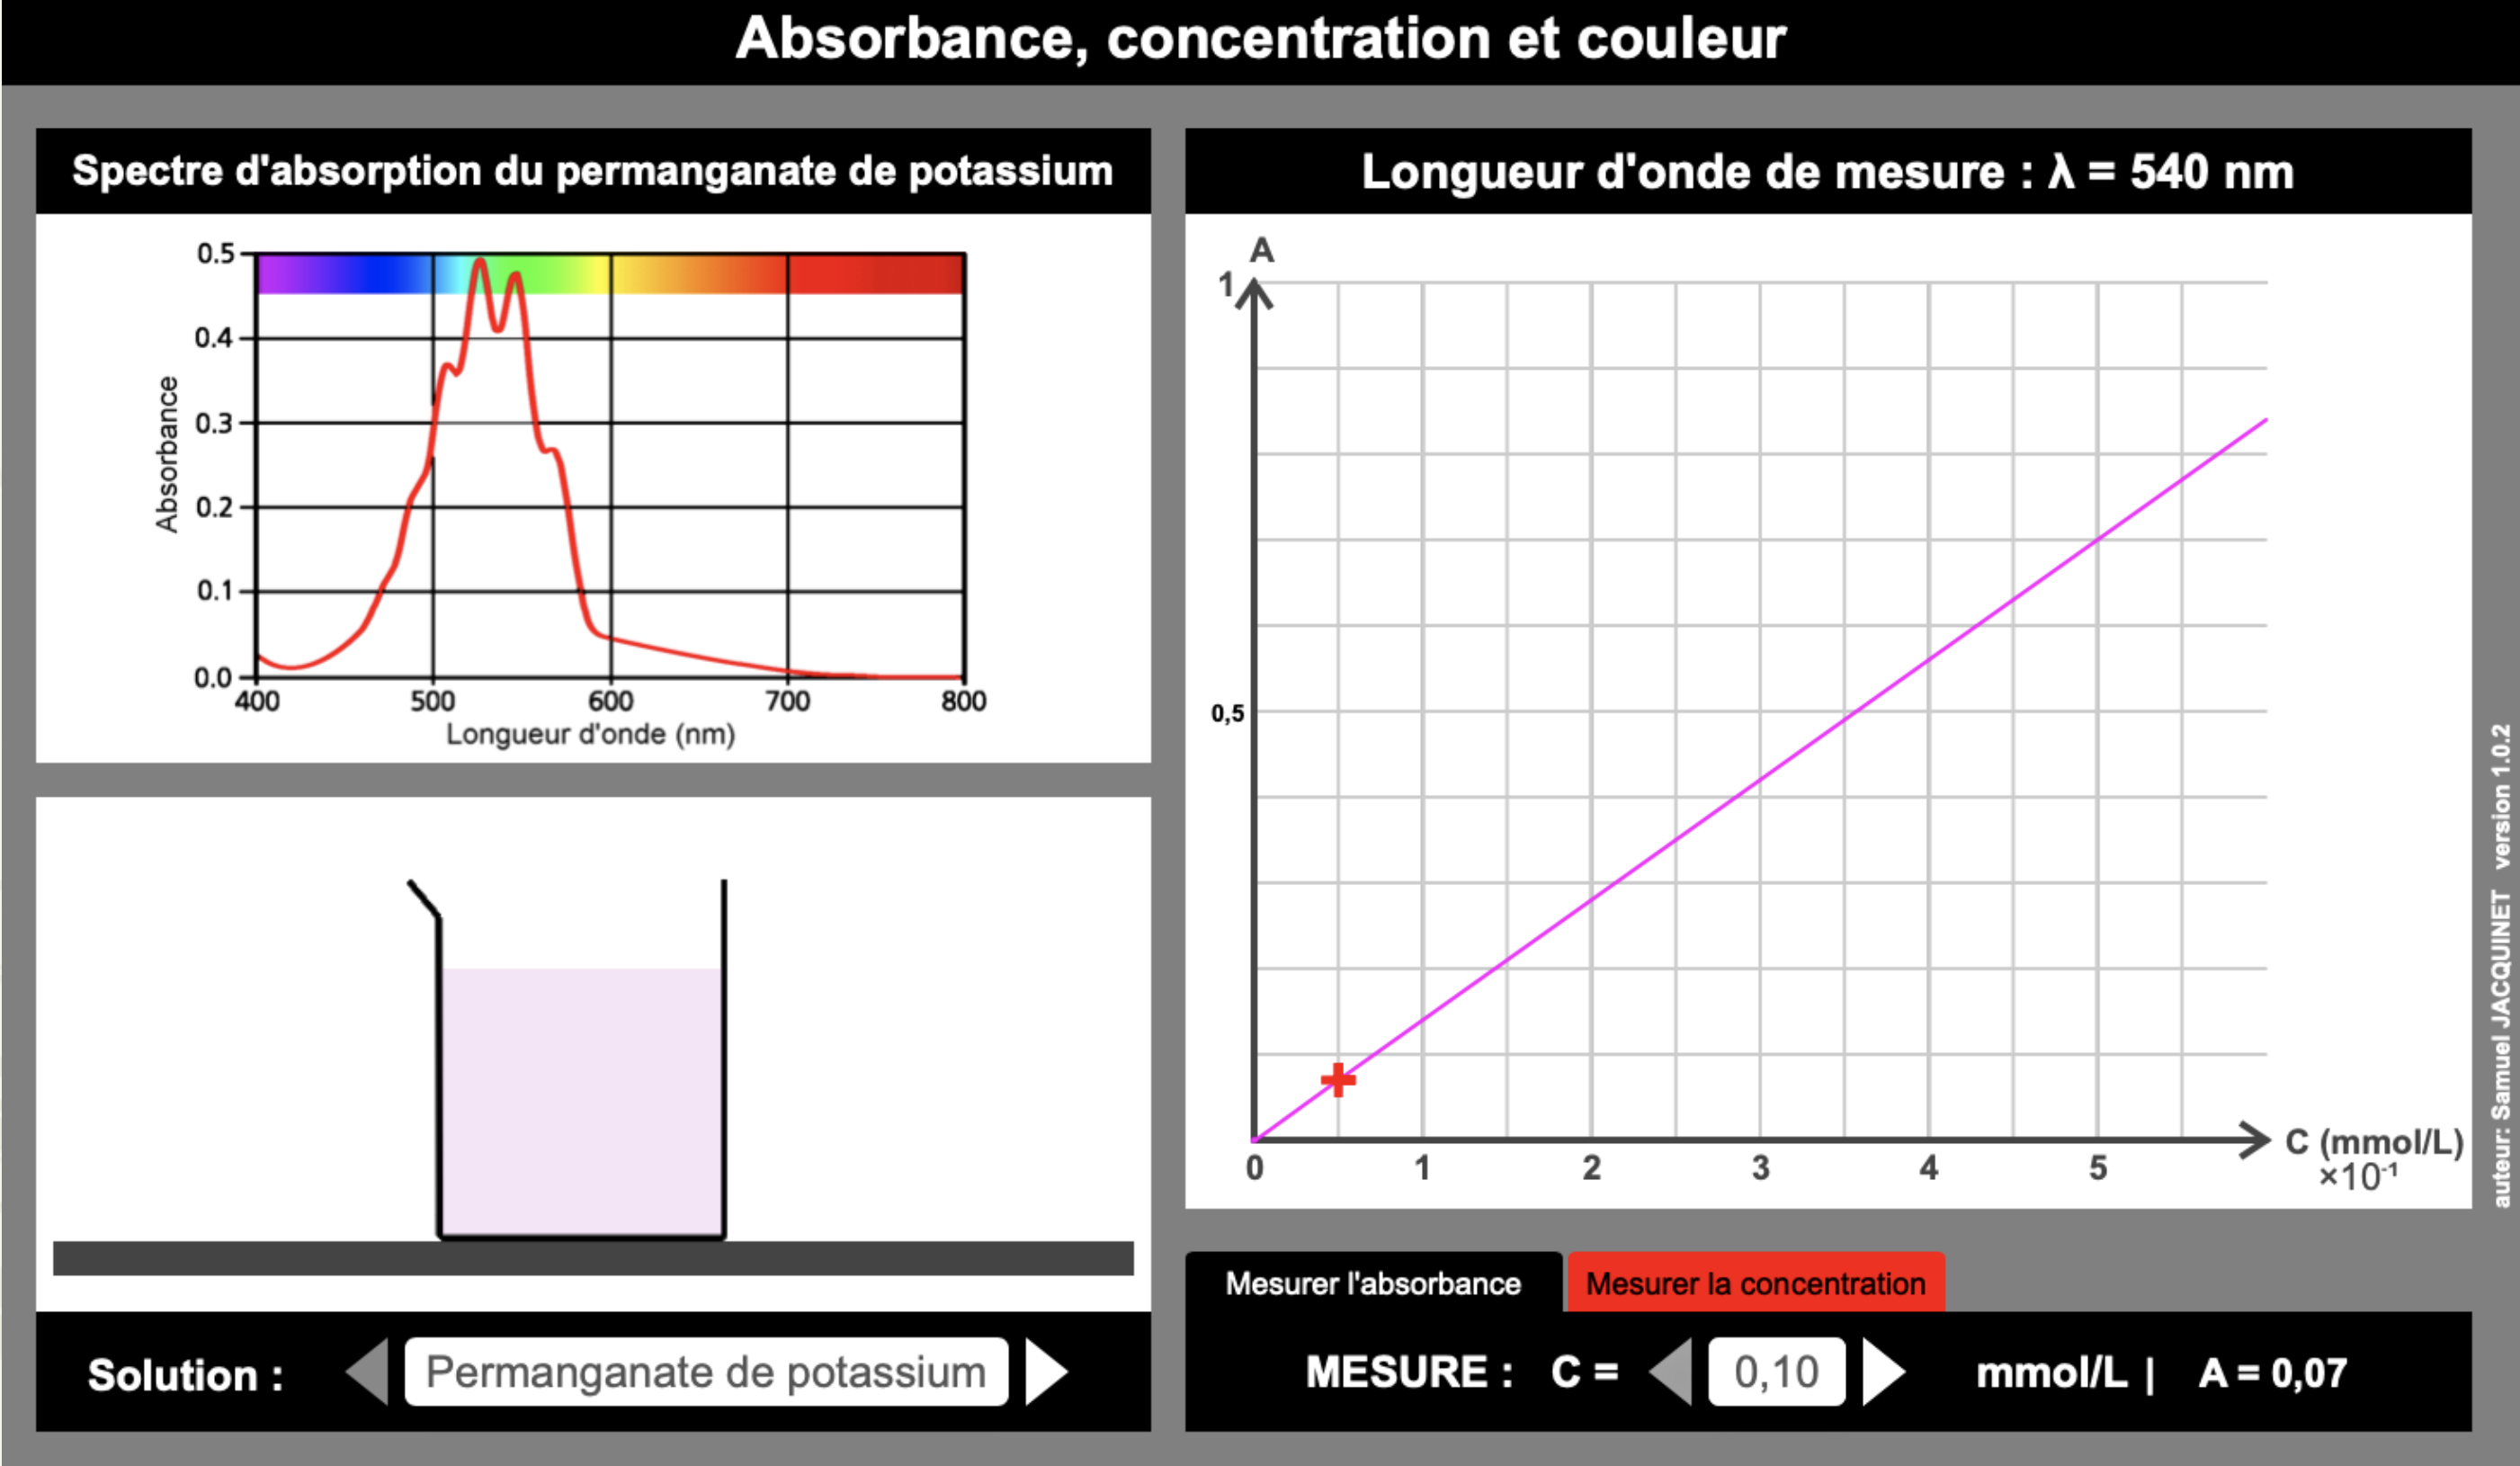 Absorbance, concentration et couleur